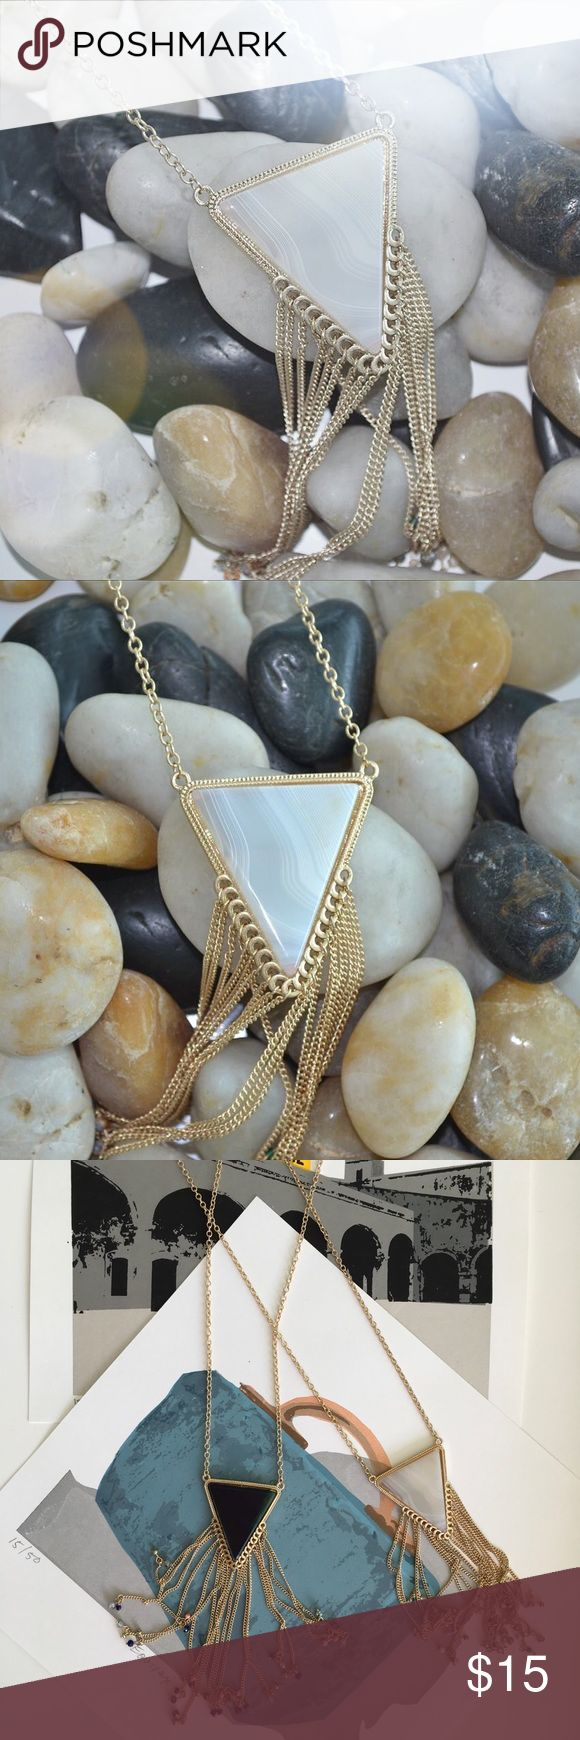 "✨JUST IN Gold Long Chain Necklace w white triangle ✨💫Gold Long Chain Necklace with White triangle  Super cute necklace with triangular pendant drop. Multi-chain tassels dangle from triangle. Lobster clasp with extension.   Measurements Length: 13"" L 5"" drop with 3"" ext. Closure: Lobster  💞Available also in Dark Green in a separate listing. Jewelry Necklaces"